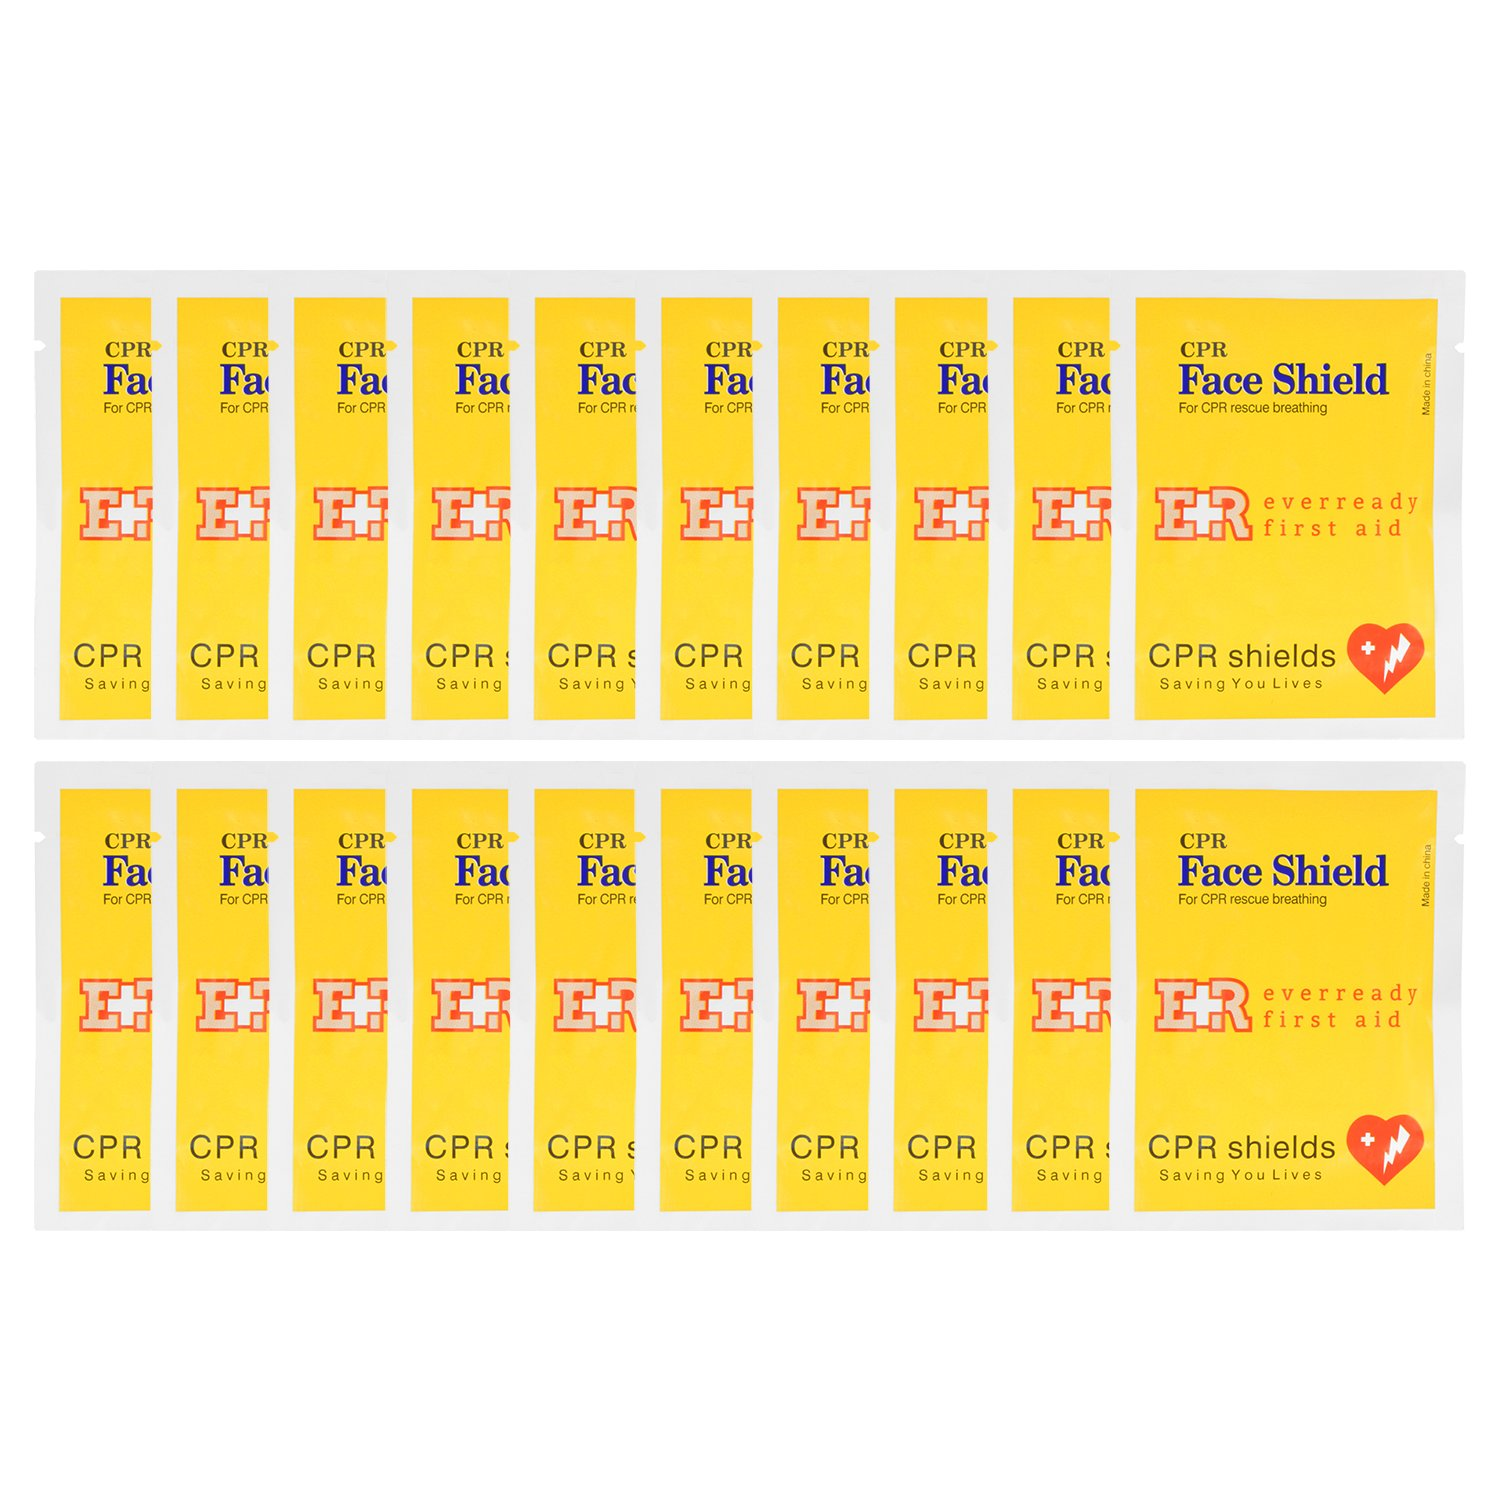 Ever Ready First Aid CPR Face Shield - 20 Pack